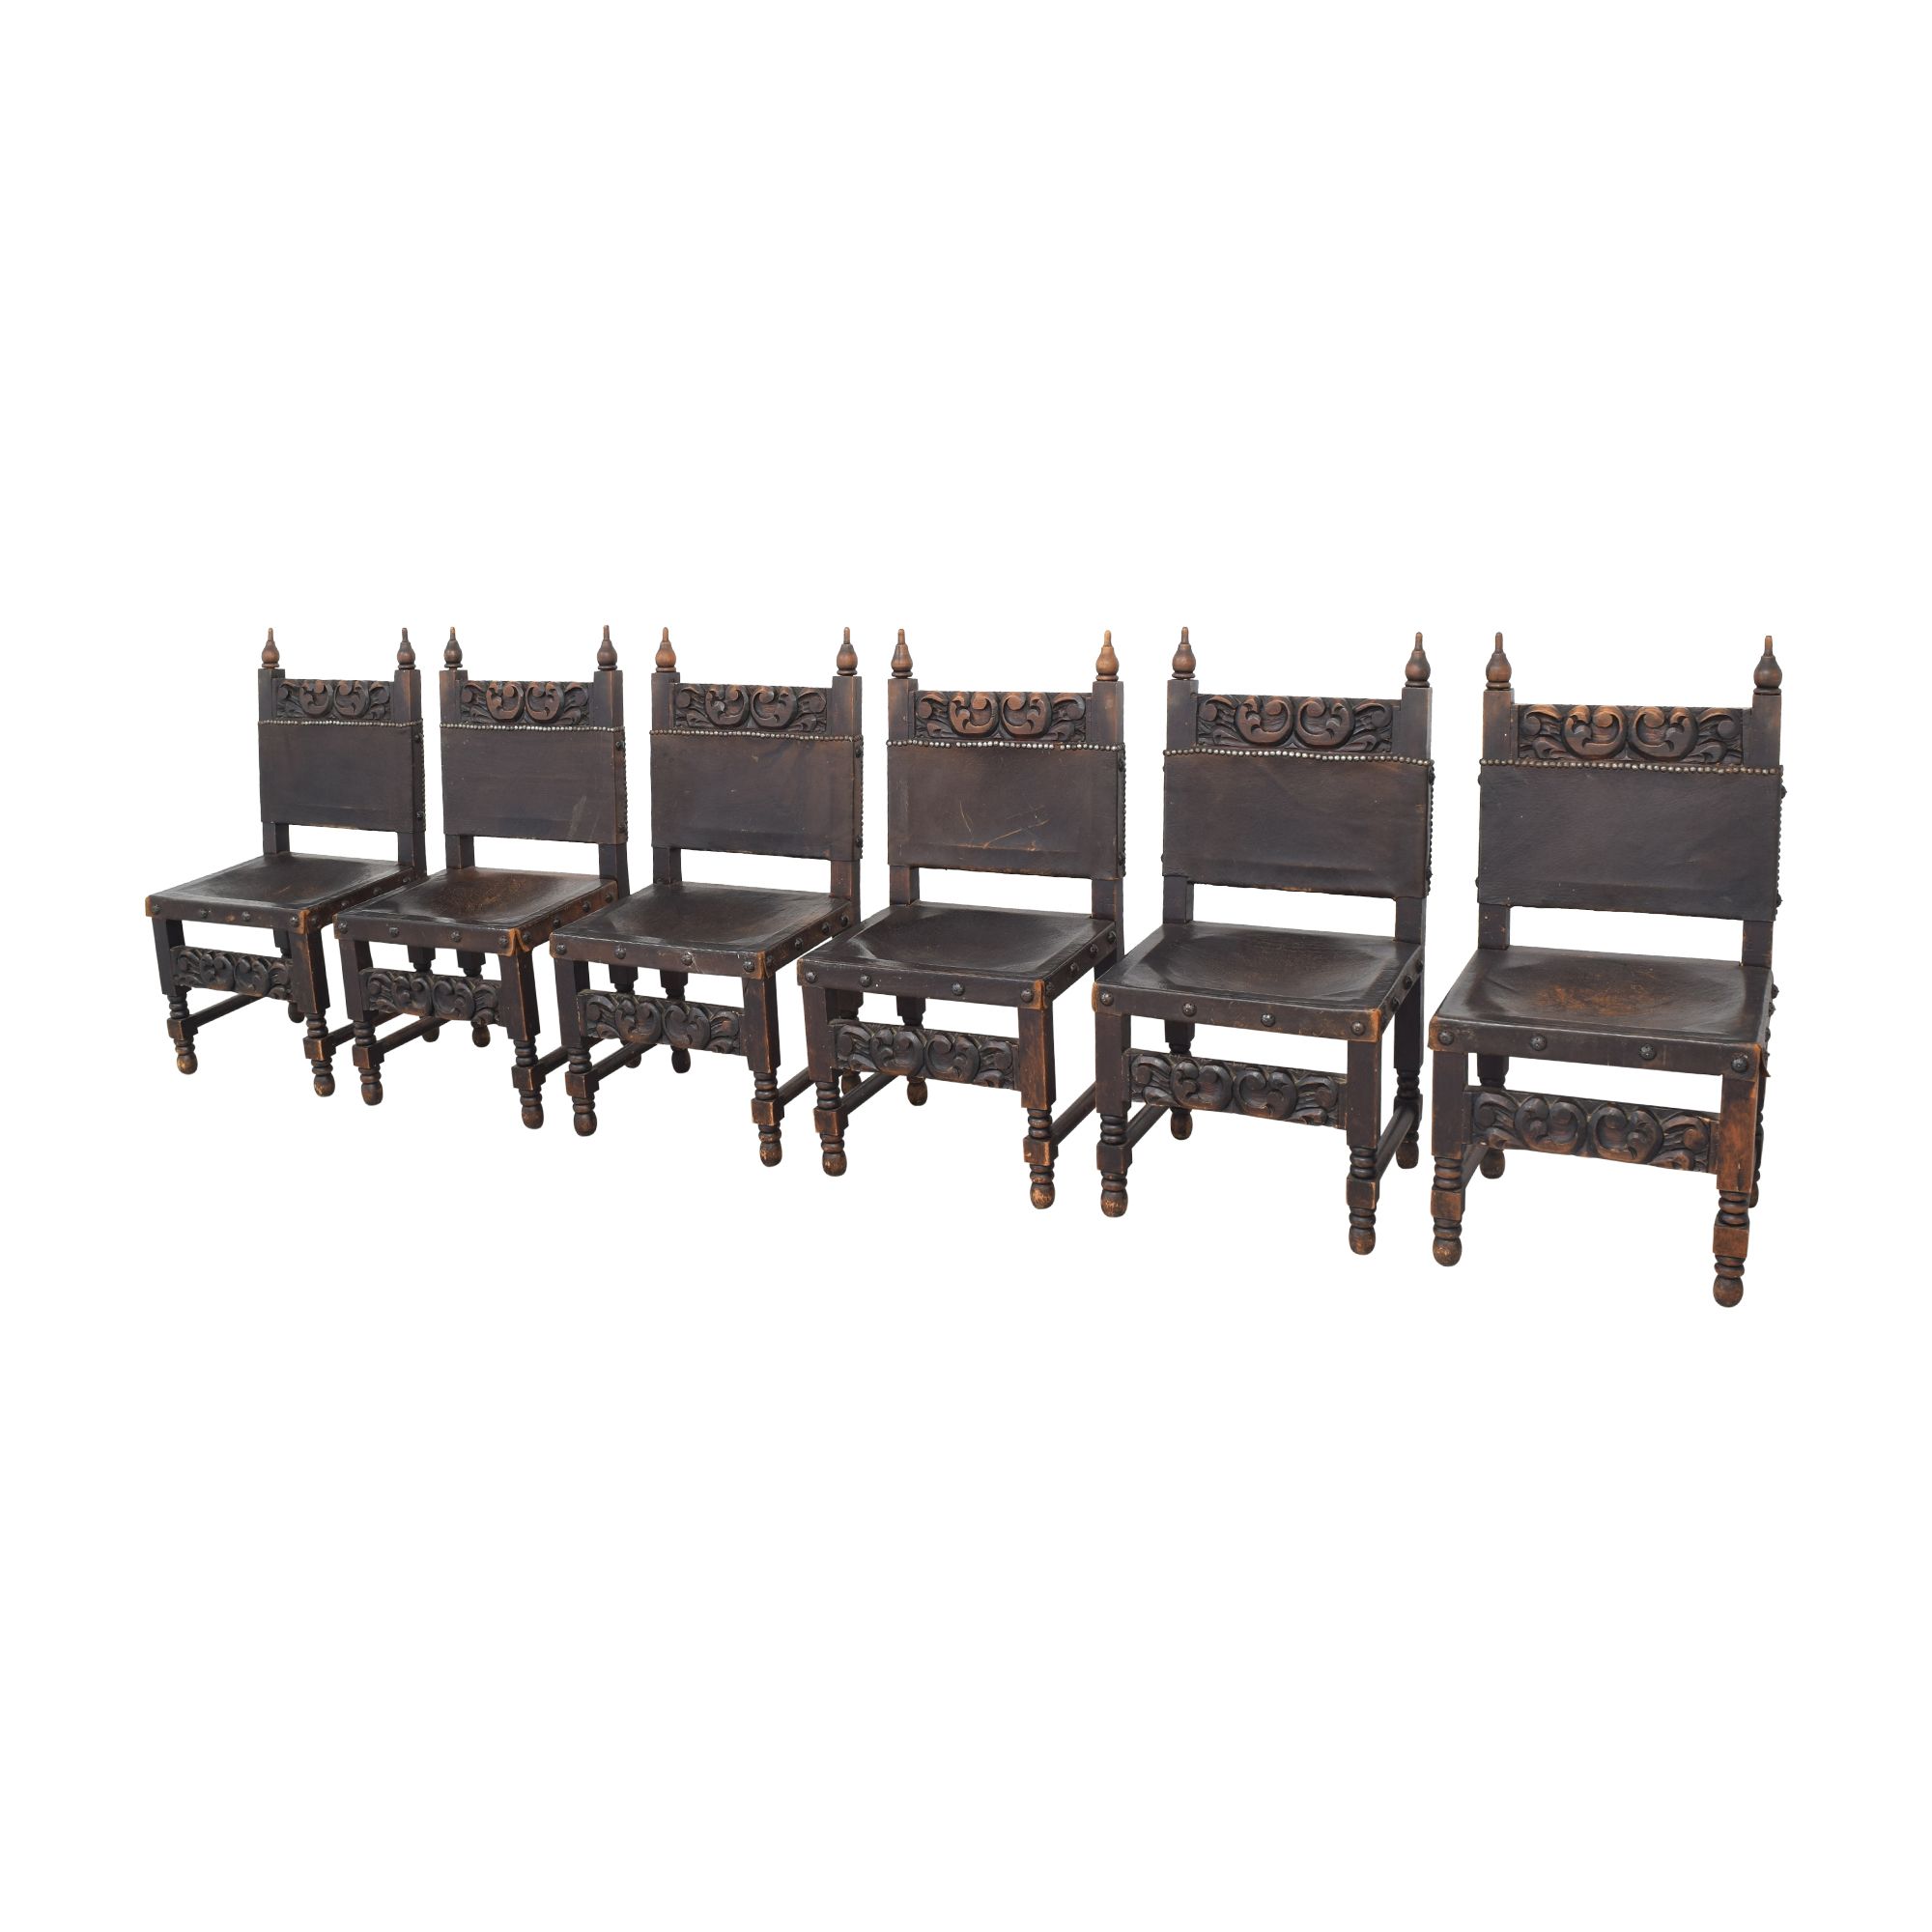 Carved Mexican Dining Chairs second hand